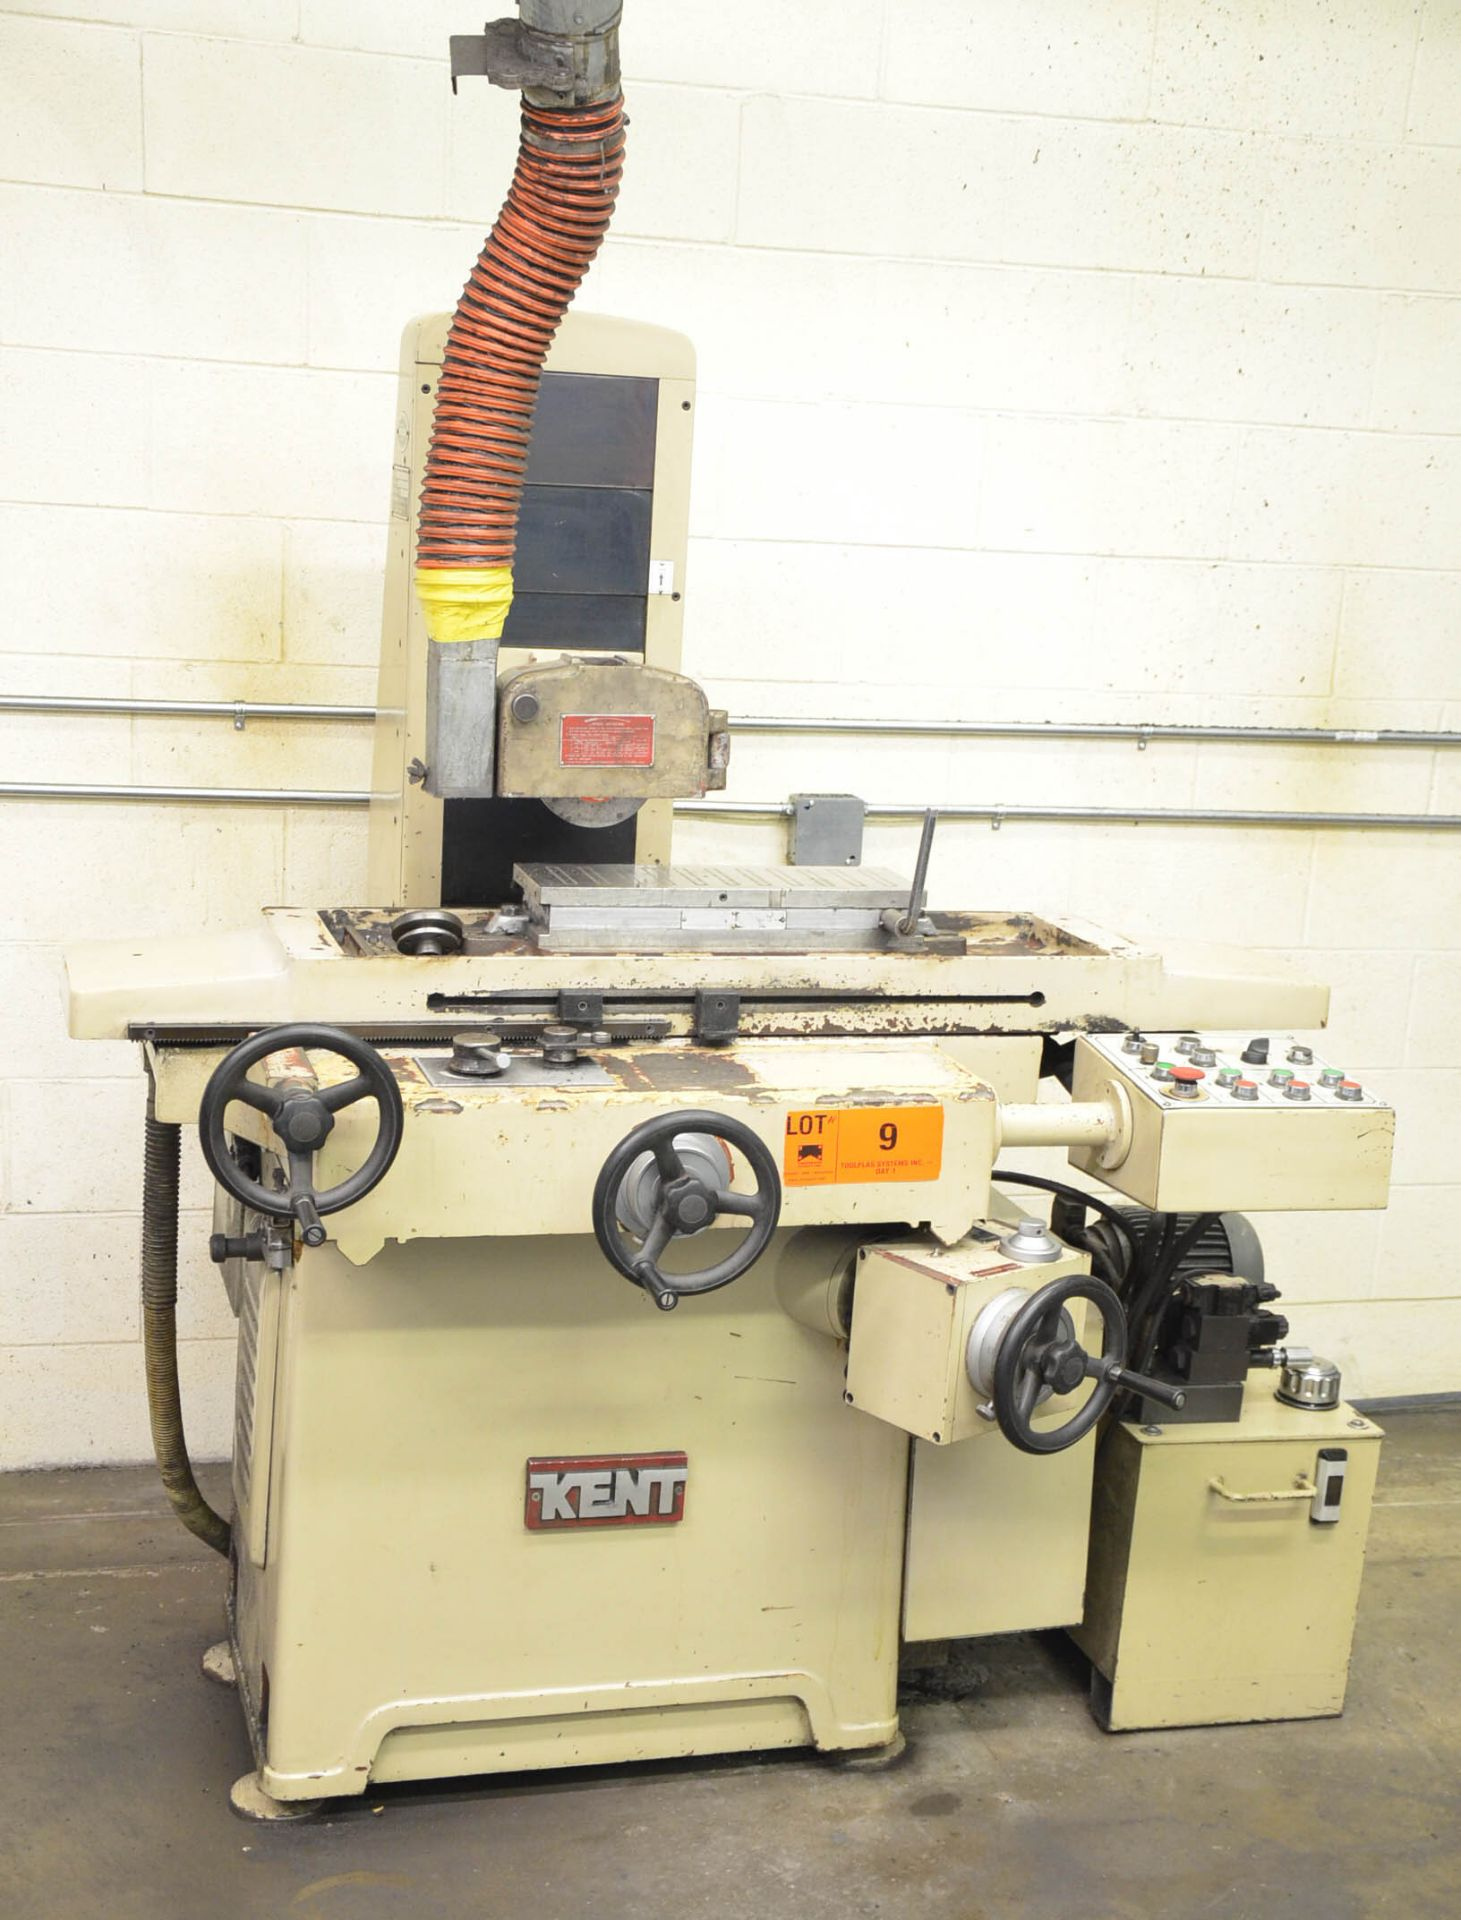 """KENT CGS-818AHD HYDRAULIC SURFACE GRINDER WITH 6""""X18"""" MAGNETIC CHUCK, 8"""" WHEEL, INCREMENTAL DOWN- - Image 2 of 5"""